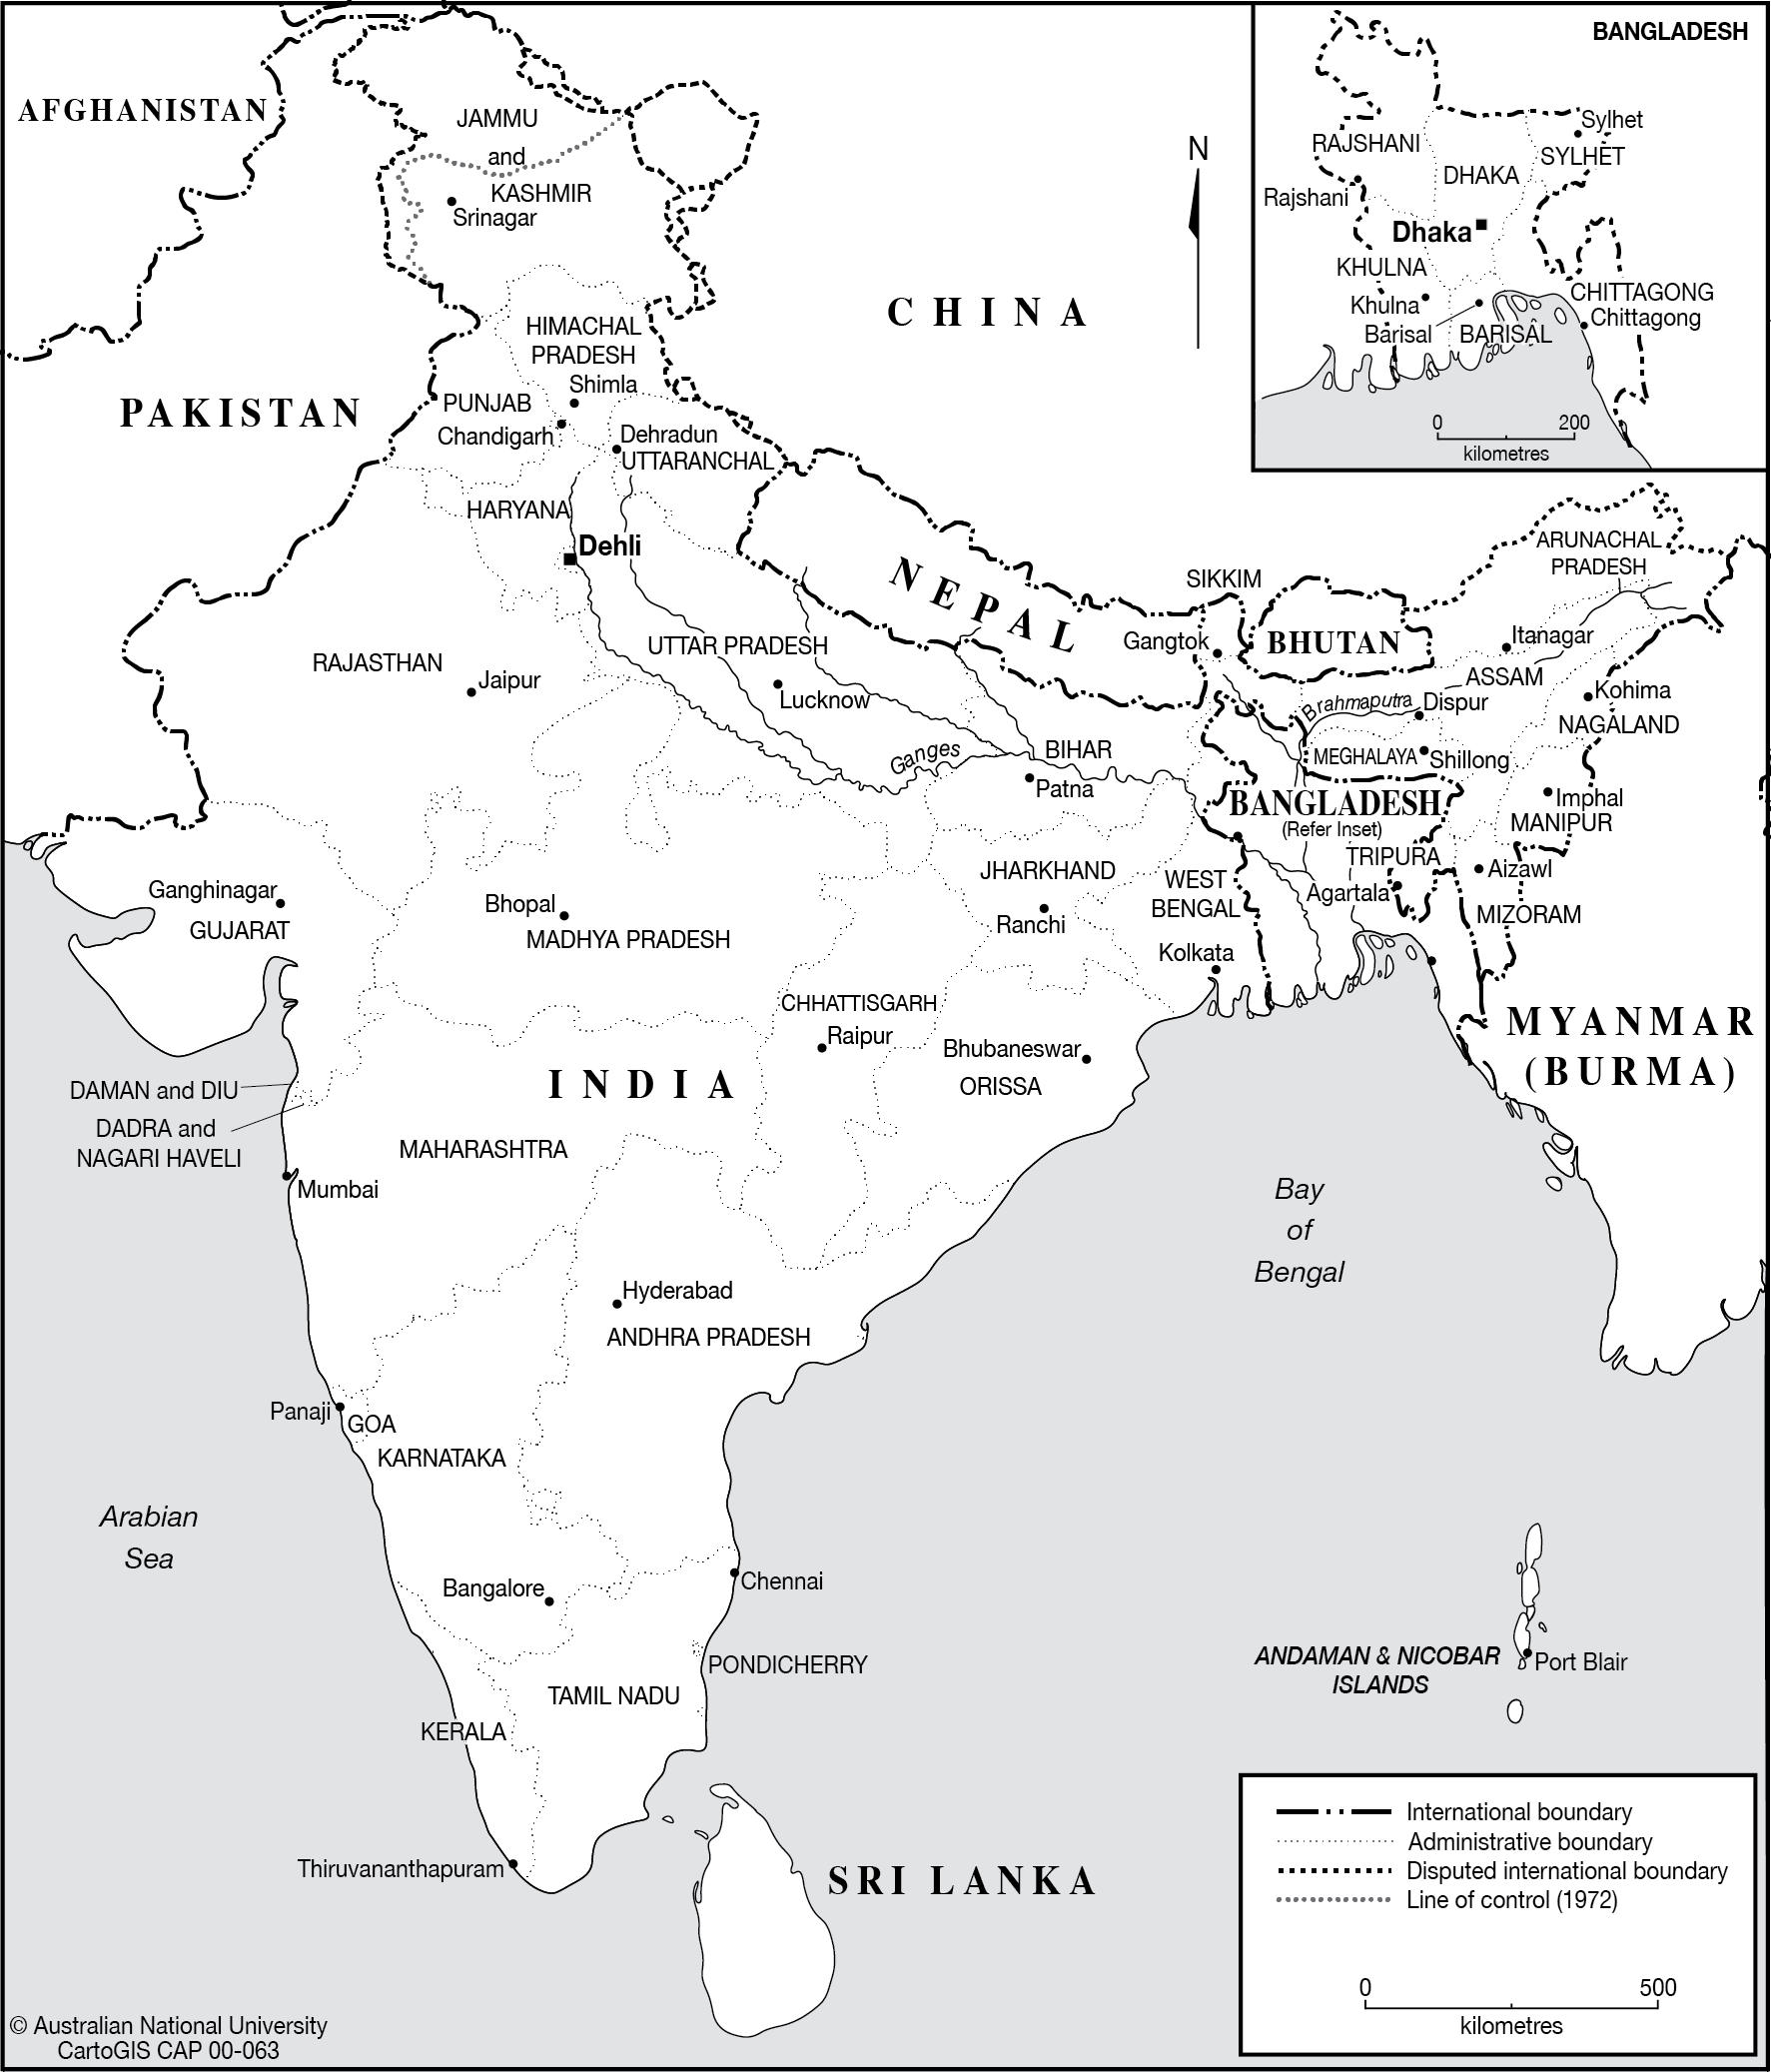 India states and capitals - CartoGIS Services Maps Online - ANU on india map 1900, canada map states and capitals, india map physical features mountain, cambodia map states and capitals, union territories of india and their capitals, india language map, india map states provinces, south america map states and capitals, india states list, india and south asia physical map, india fertility rate by state, spain map states and capitals, map with capitals, india map with states, india map outline, the united states map states and capitals, india map with cities, india language tamil, india and its states, mexico map states and capitals,